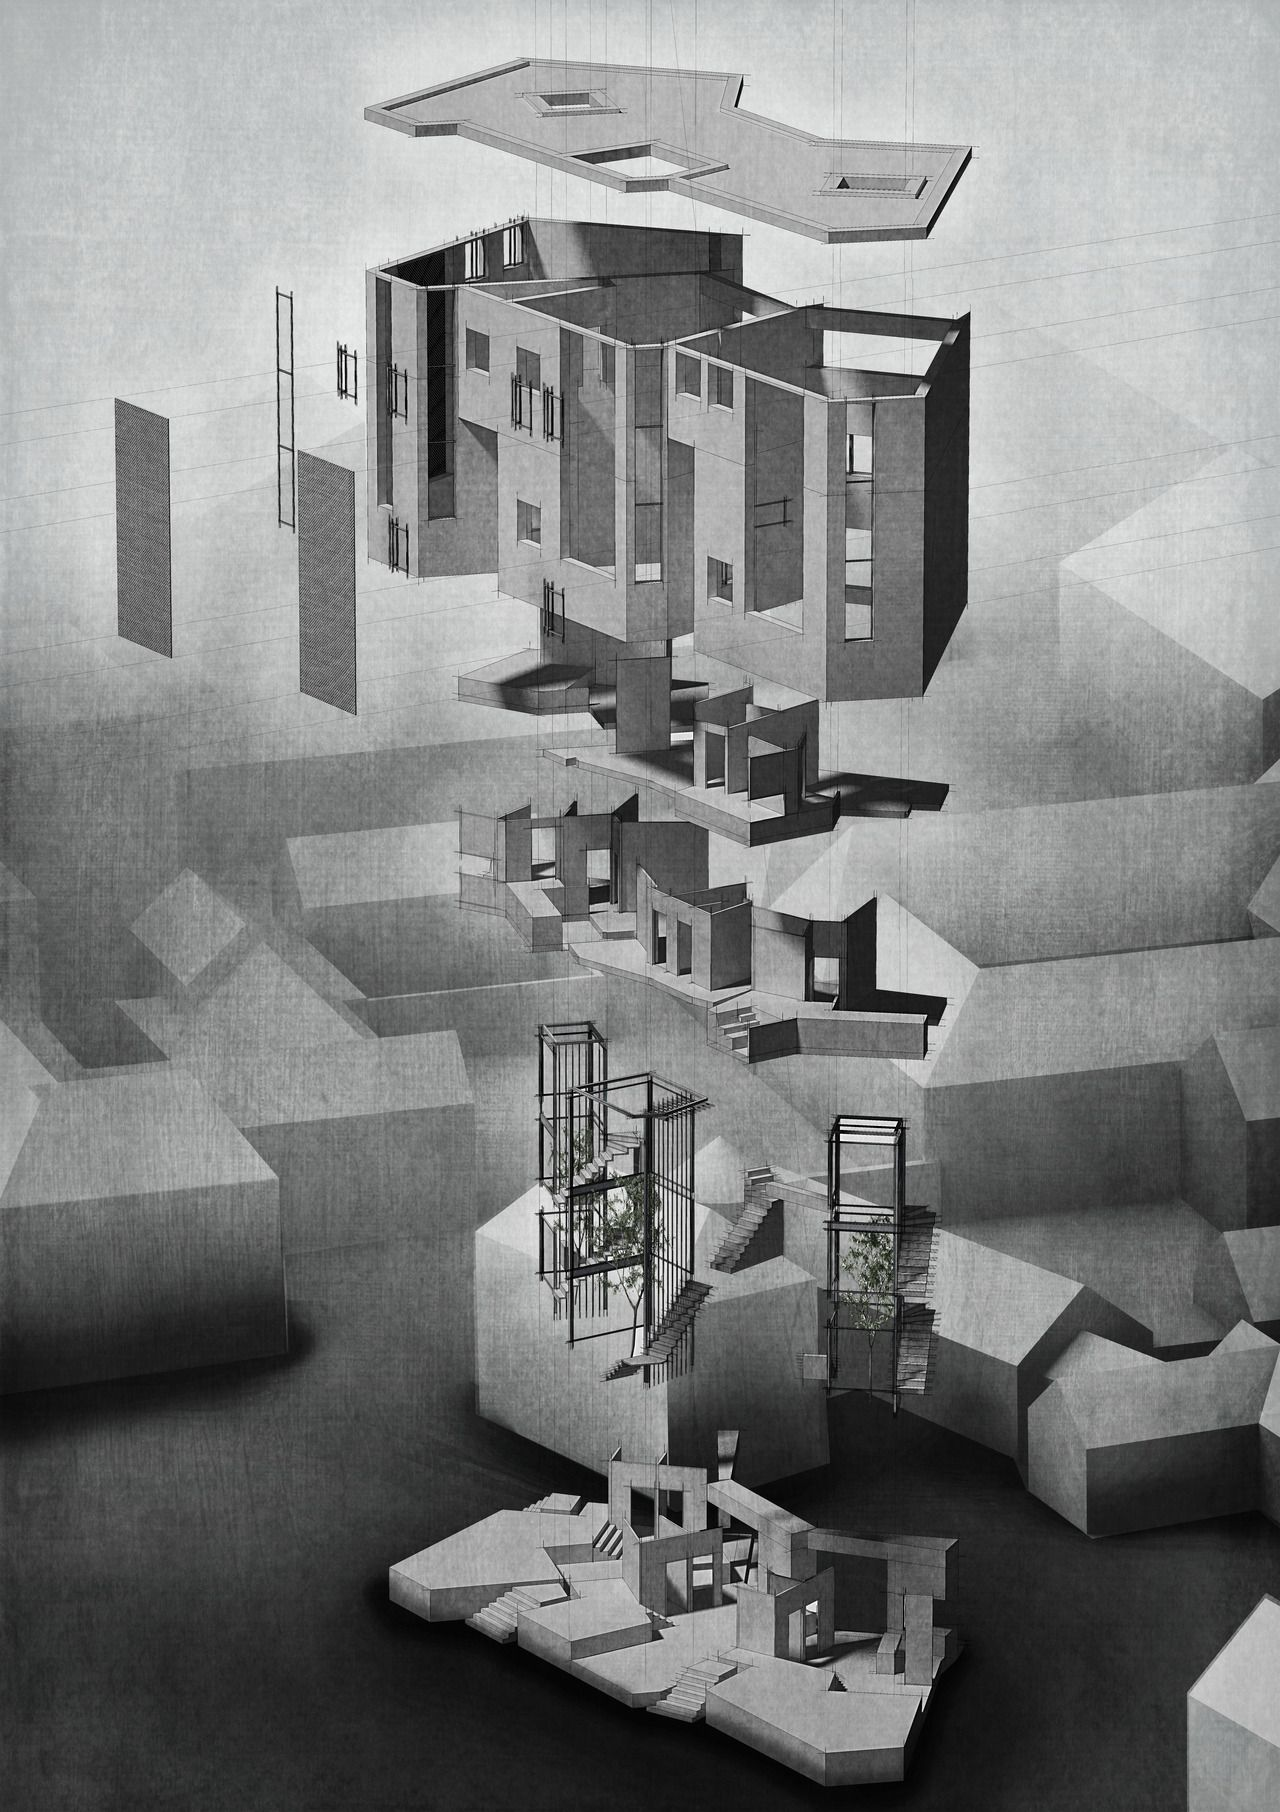 The ArchitectuExploded Perspective by Ewan HooperRoof Folded Casing Interior Planar Structure Atriums Anchor Circulation Eroded Plinth ral Review's Folio